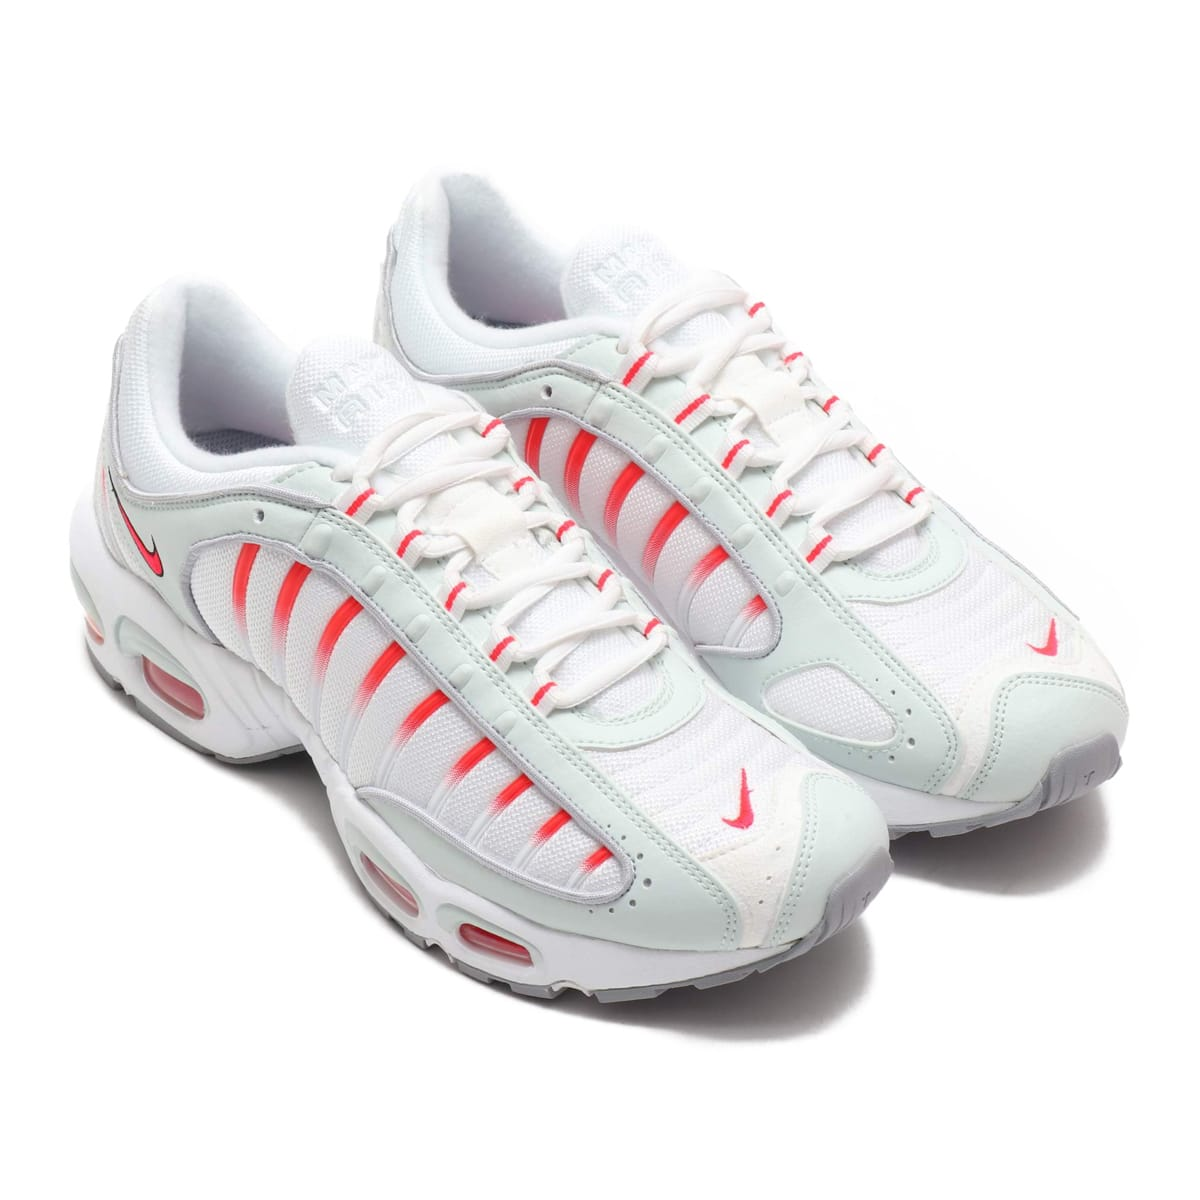 NIKE AIR MAX TAILWIND IV GHOST AQUA/RED ORBIT-WOLF GREY 19SU-S_photo_large